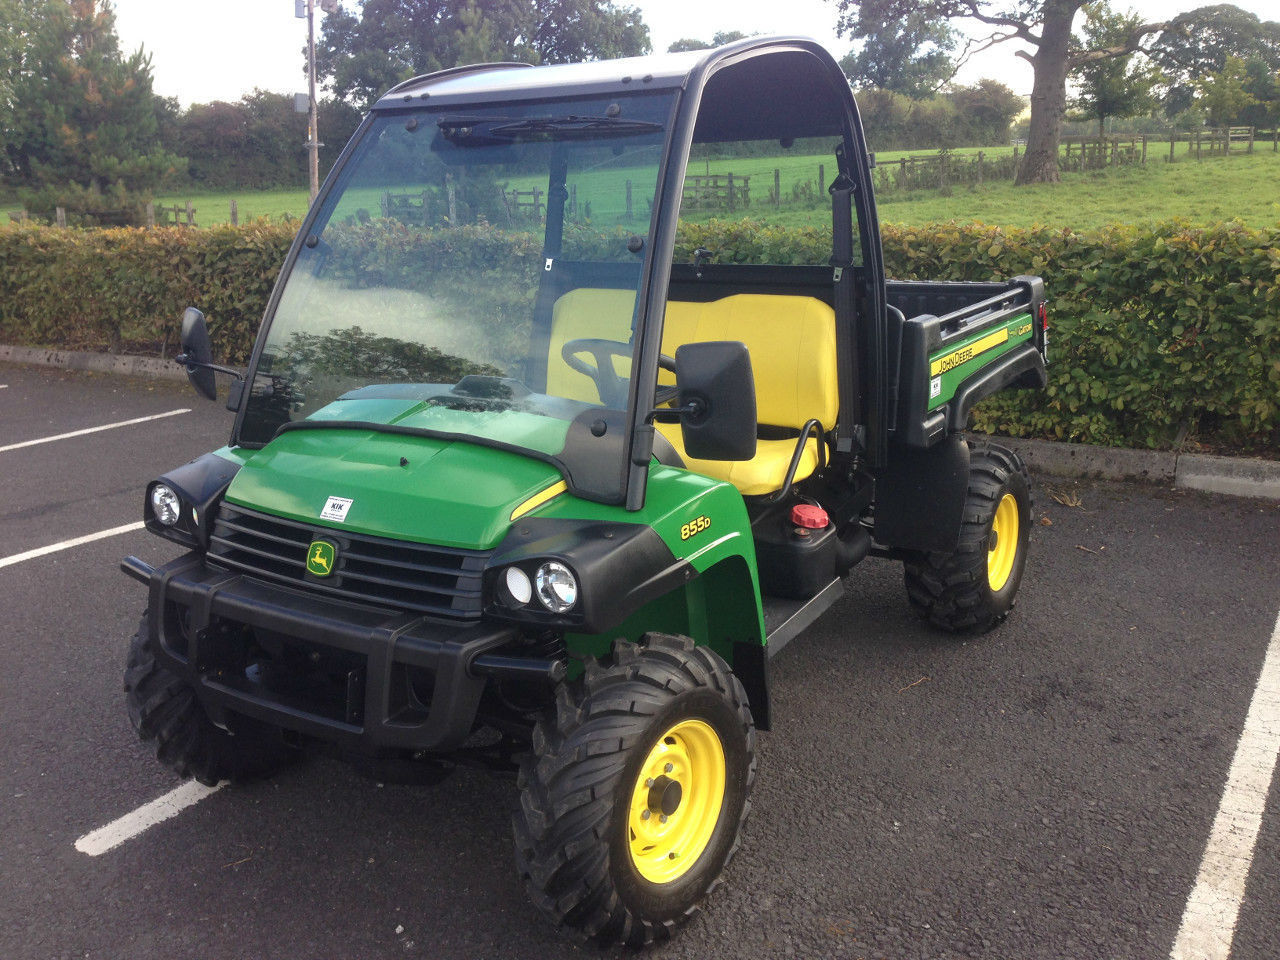 John Deere Gator >> John Deere Gator 855D XUV -IRS - 4X4 - Low Hours - Excellent Condition